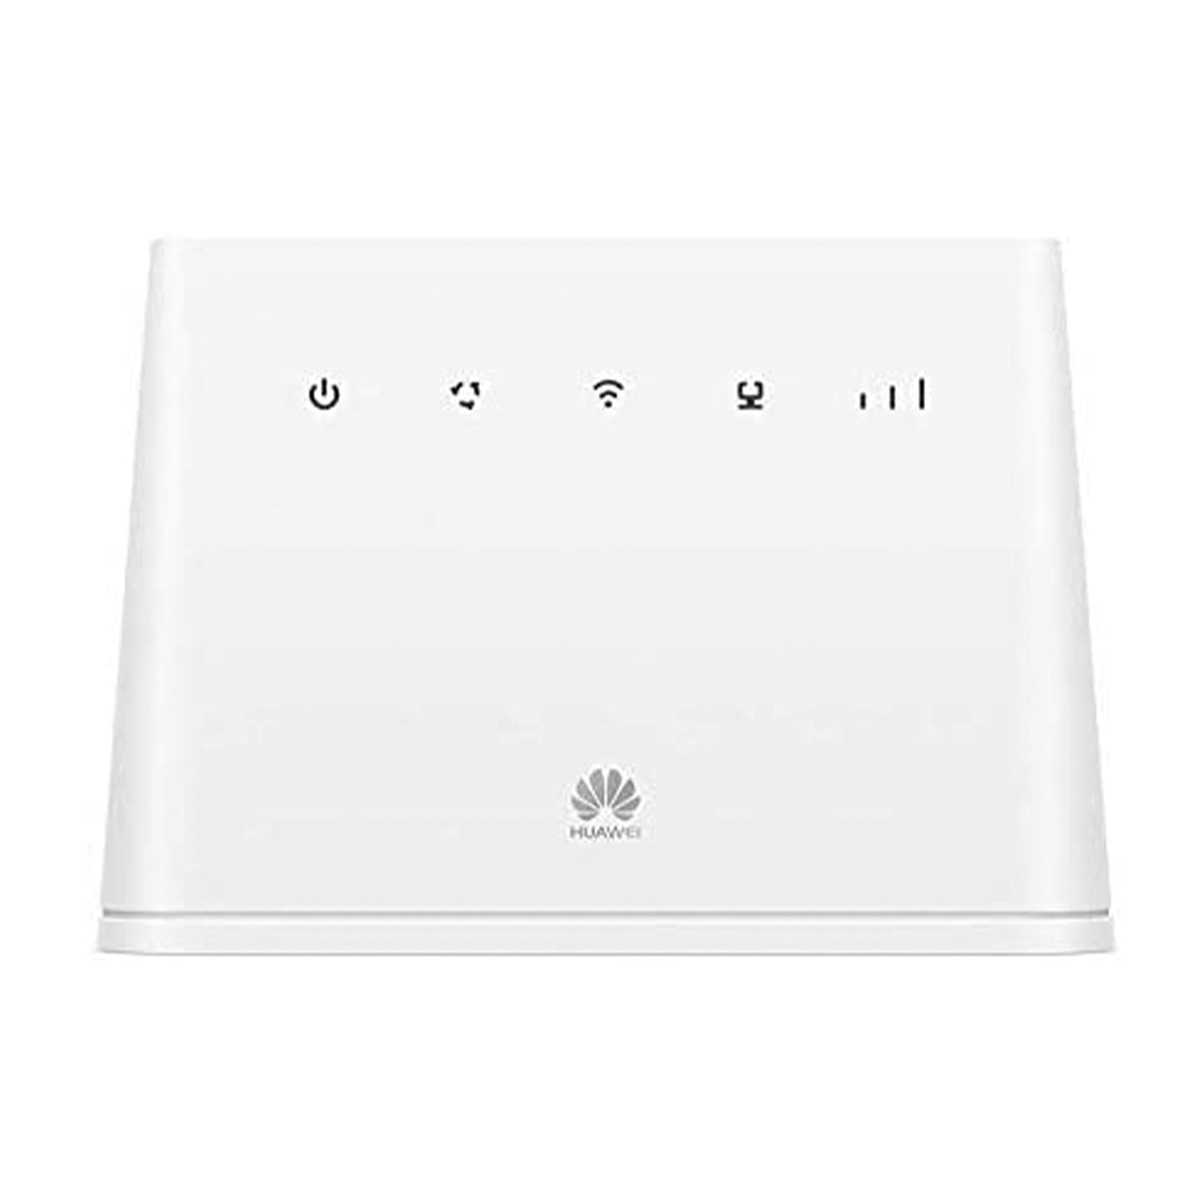 Huawei B311-221 150 Mbps 4G LTE Wireless Router White